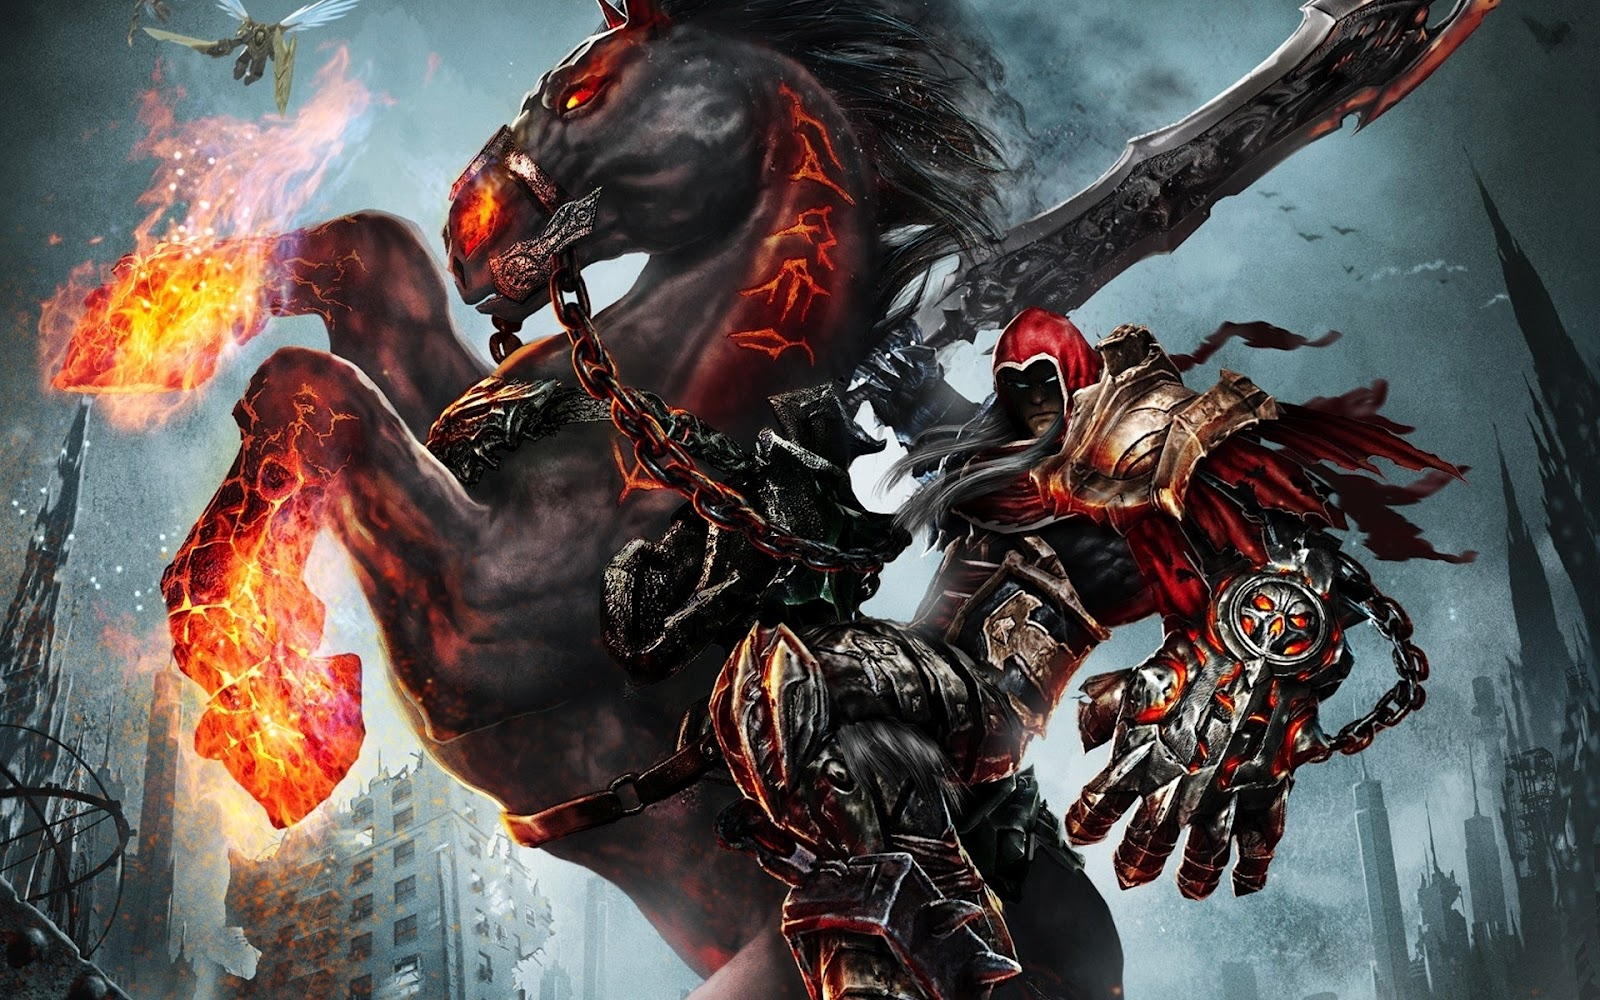 http://4.bp.blogspot.com/-AiAB511gRBI/T2iGzYnR3qI/AAAAAAAAA5o/3RJMMY83ukA/s1600/Darksiders_Knight_with_Flaming_Horse_HD_Game_Wallpaper-gWb.jpg